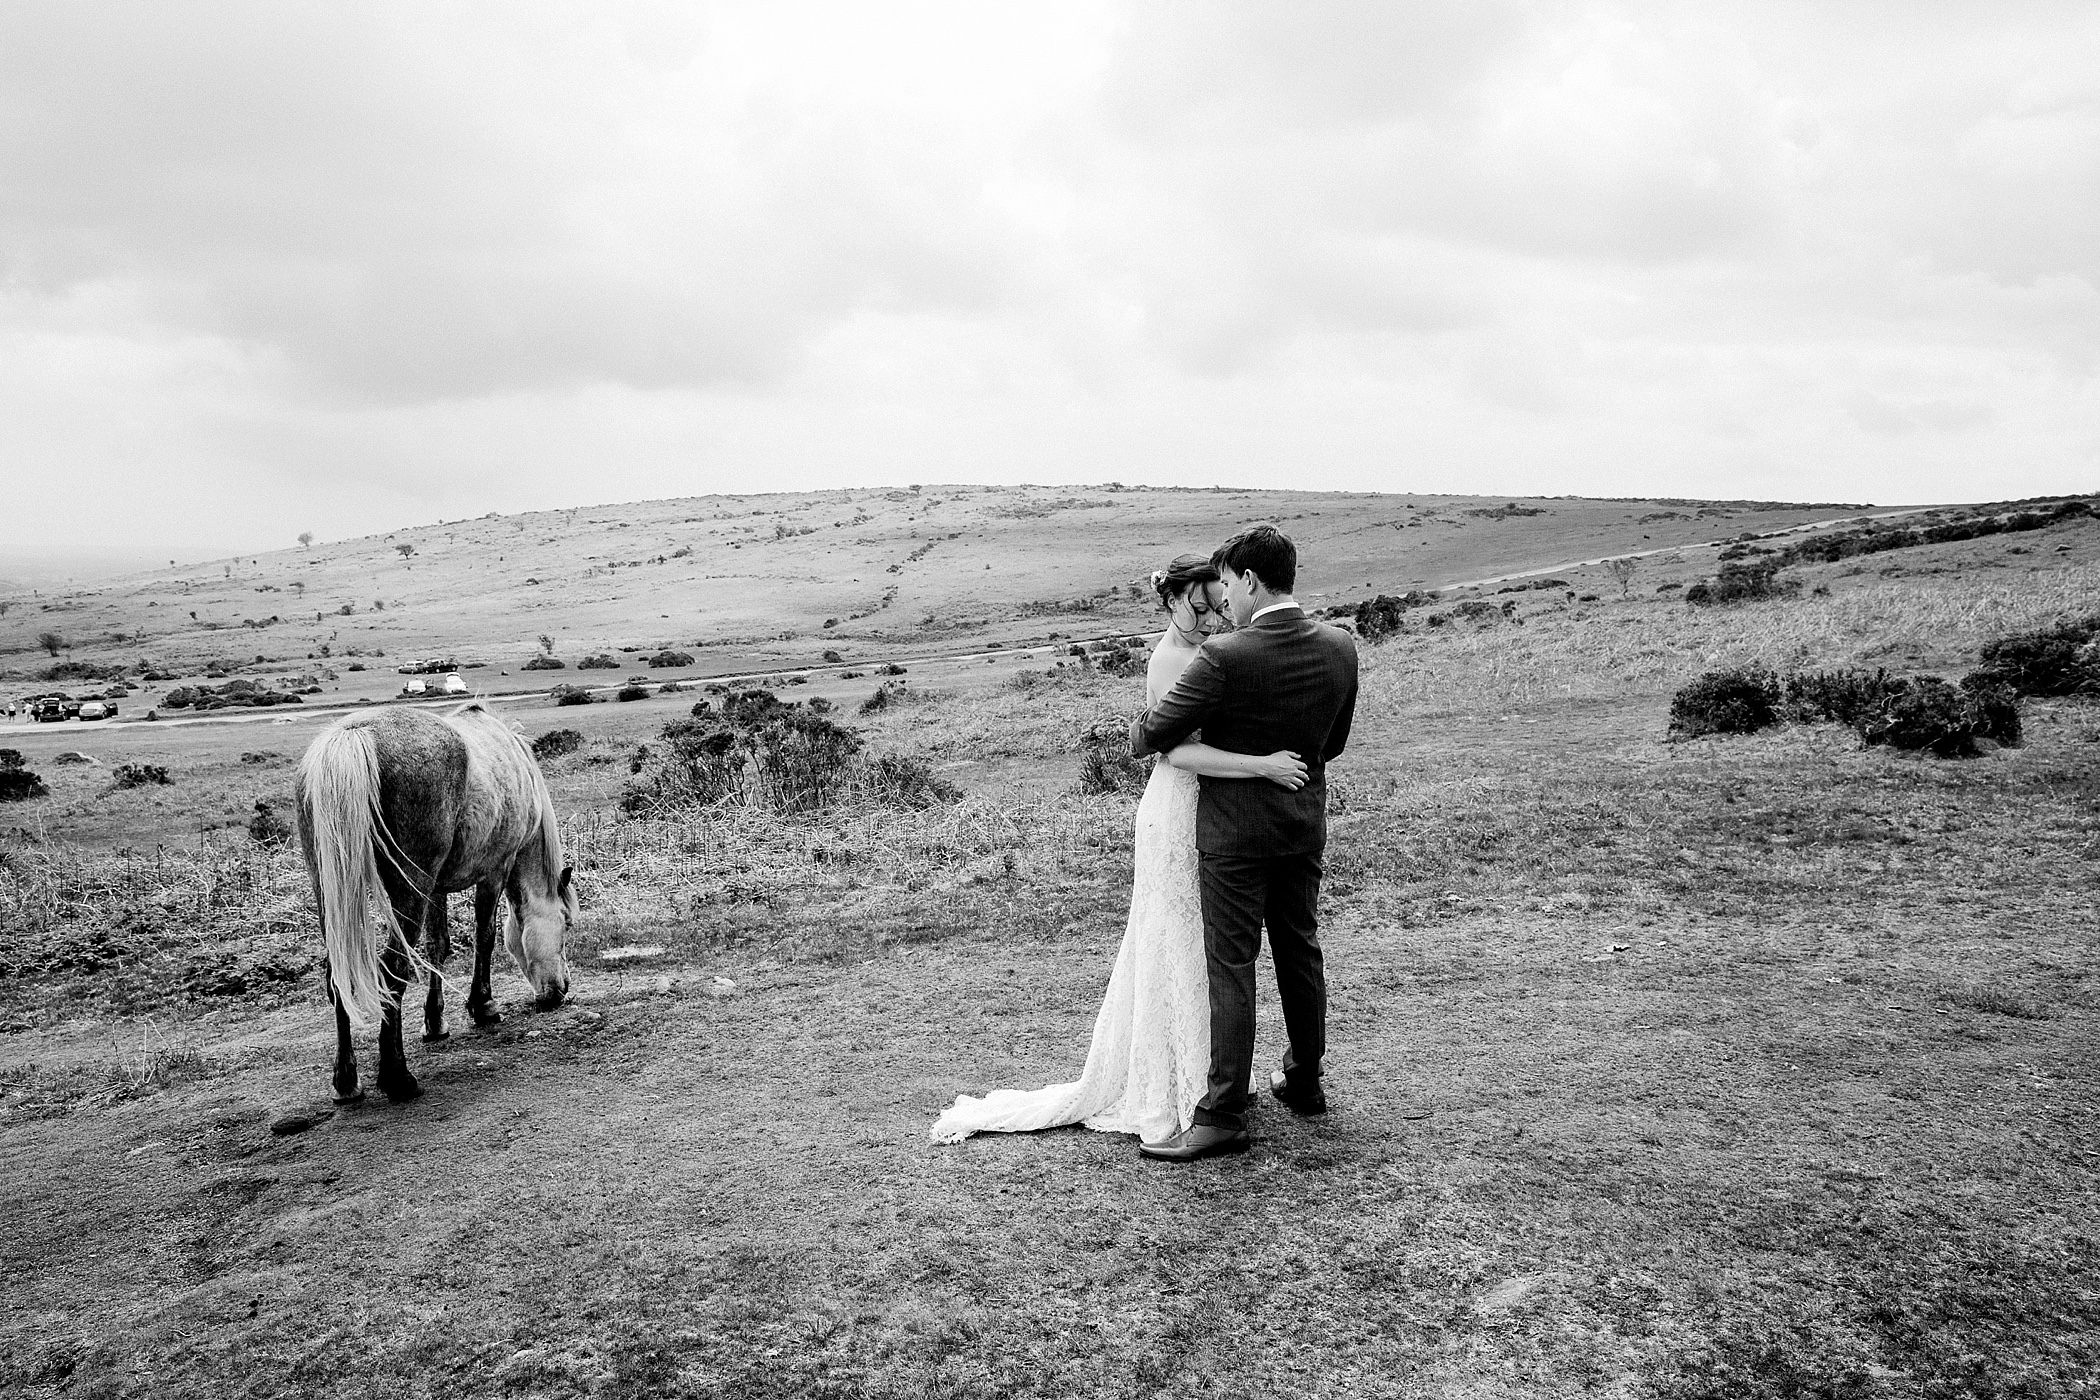 Dartmoor pony with bride and groom